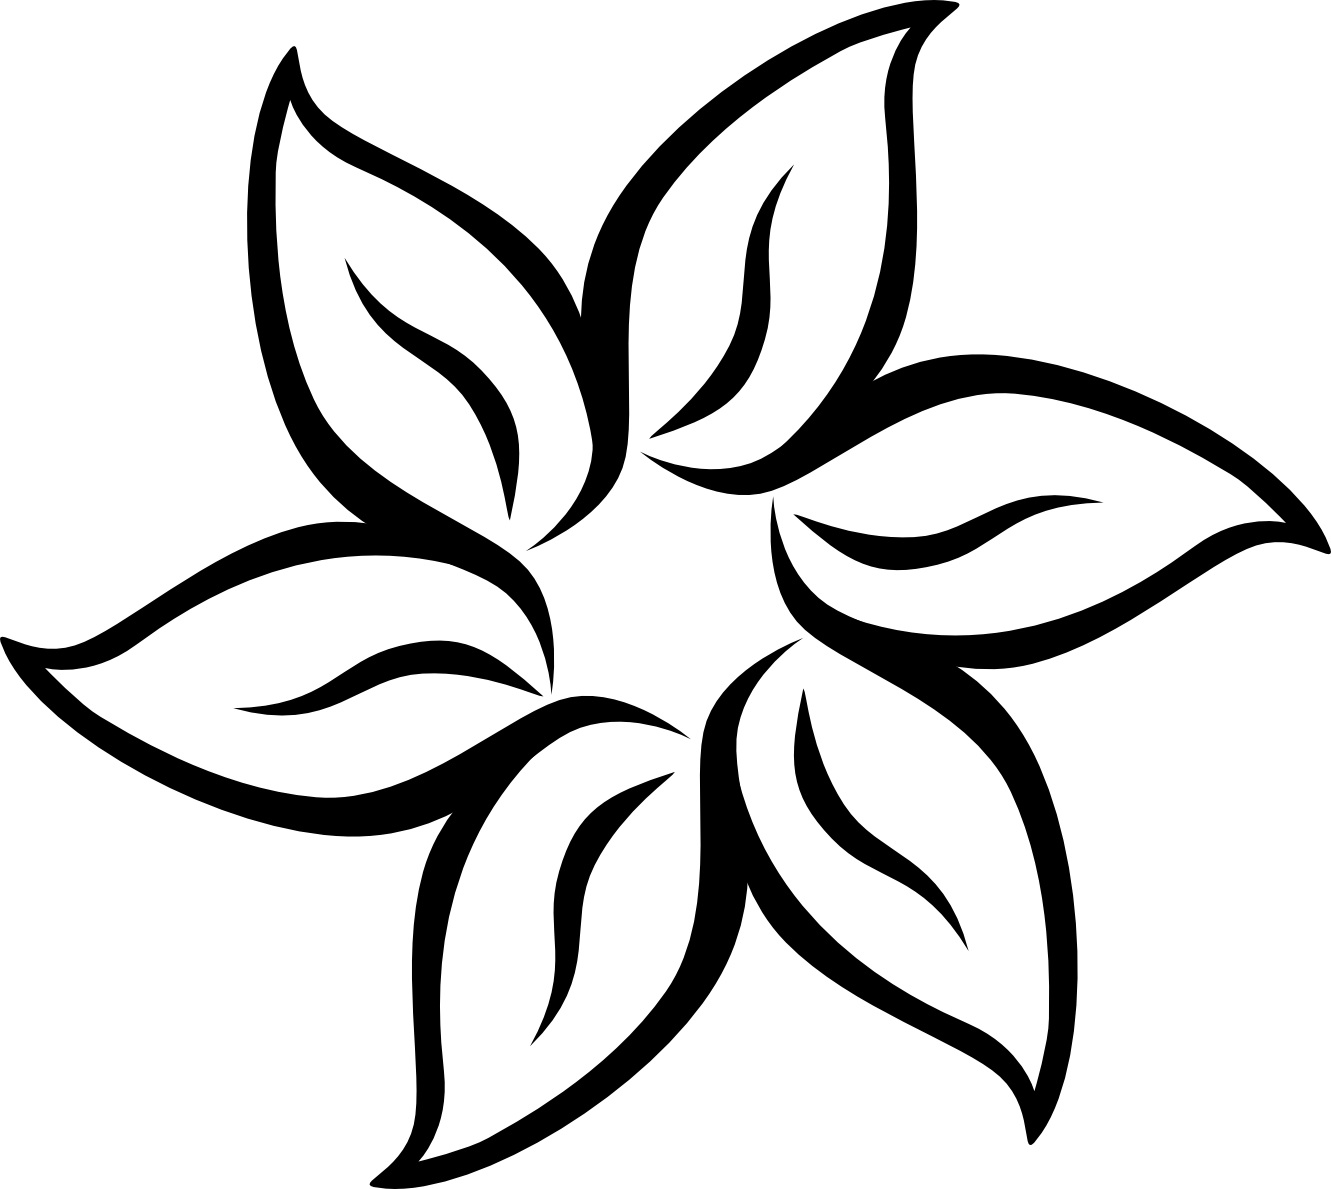 Line Art Vector Design Png : Vector flower graphics clipart best